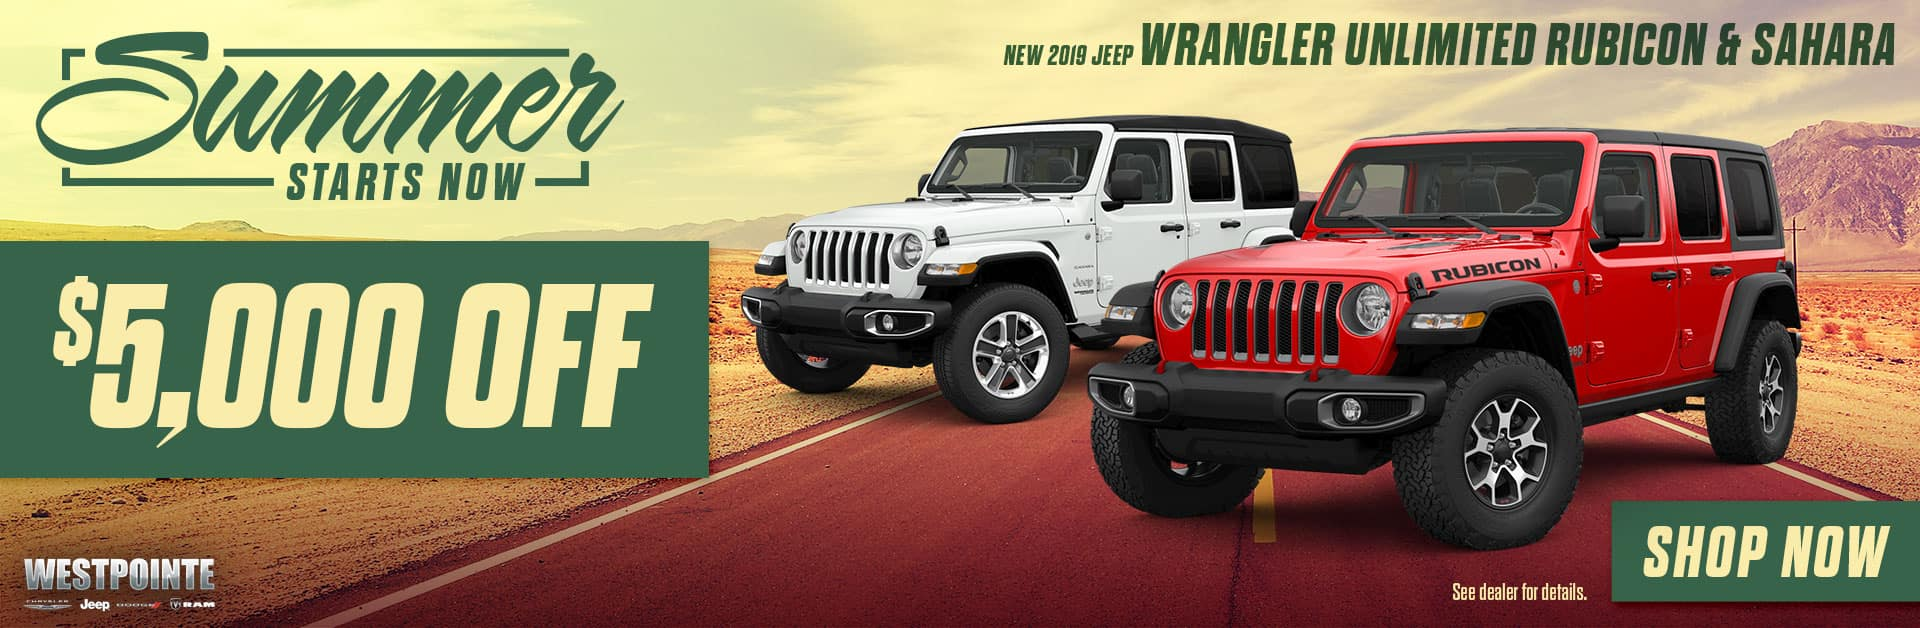 2019 Wrangler Unlimited Rubicon & Sahara